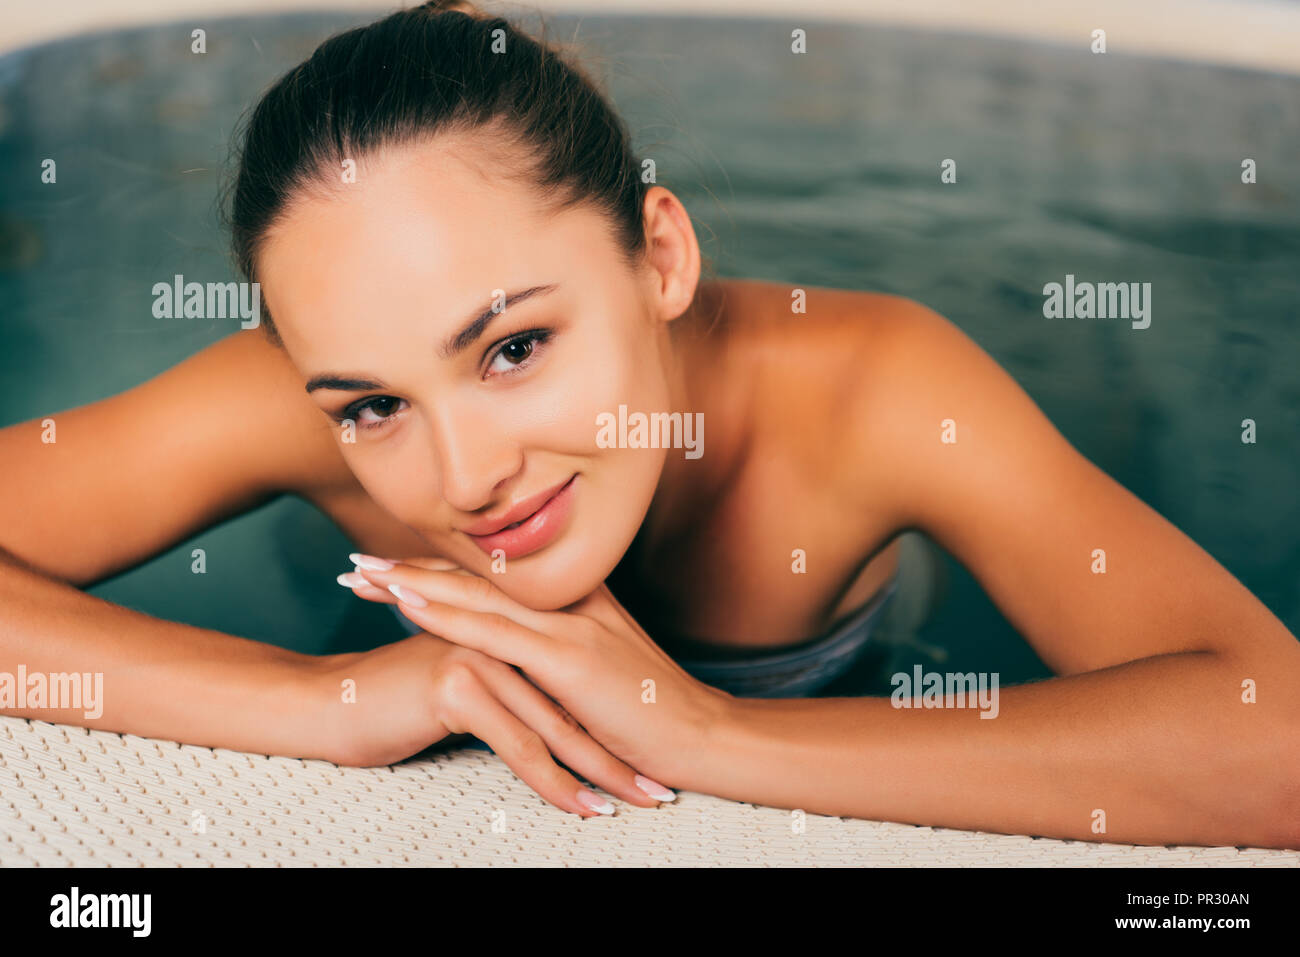 woman relaxing in swimming pool and looking at camera - Stock Image